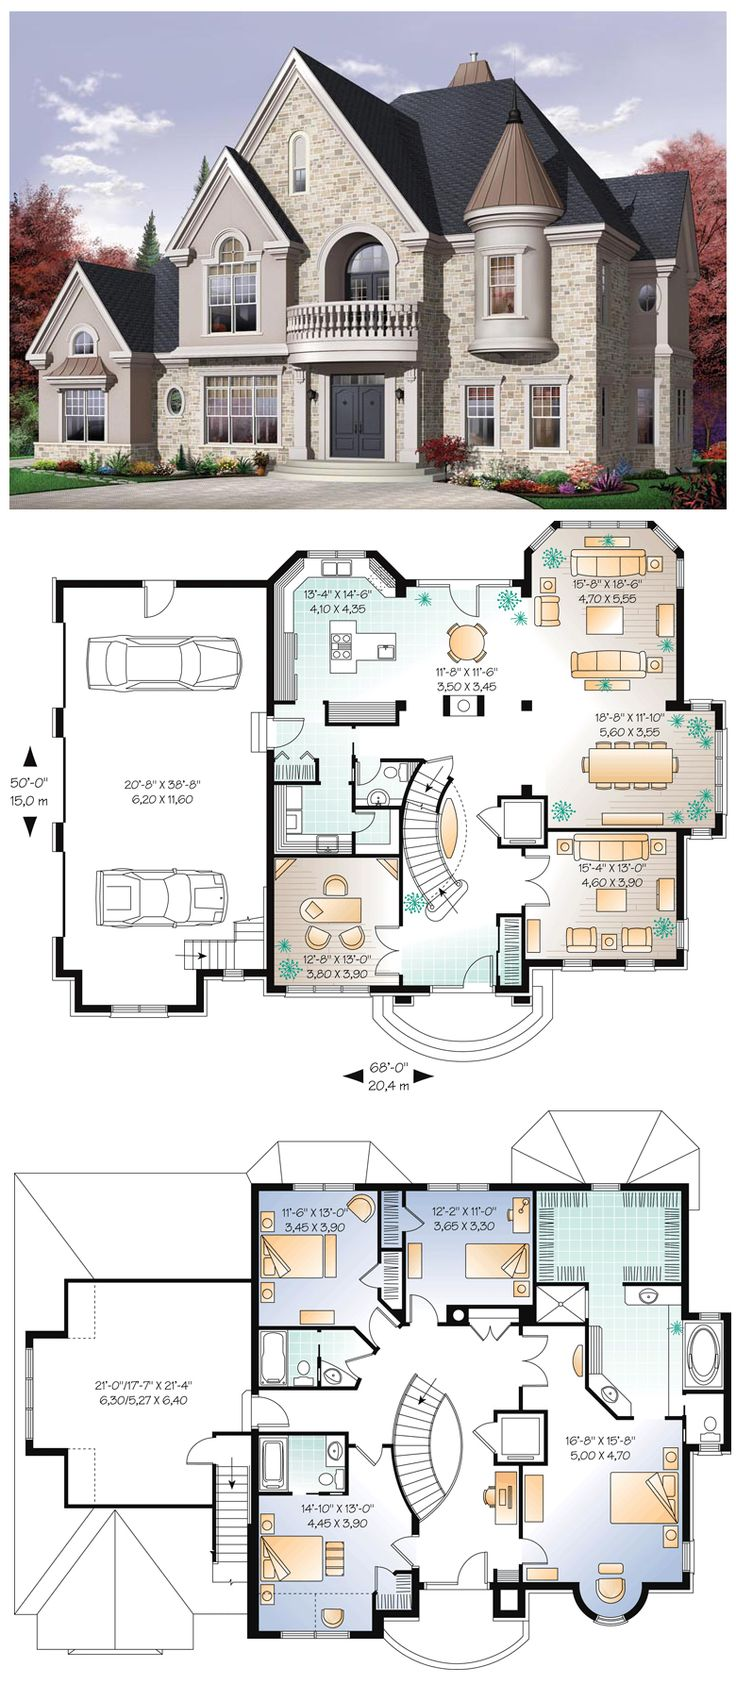 #Luxury #HousePlan 64847 | Presenting a stately exterior with impressive rooflines, stonework and balcony, this fine home makes quite a statement. Inside, you'll discover 10-foot ceilings (11 in the bonus room) and comfortable rooms in which to relax and entertain. A bright living room, generous dining room, open kitchen and breakfast nook all enjoy the hearth and easy access to the garden doors leading to the back yard.